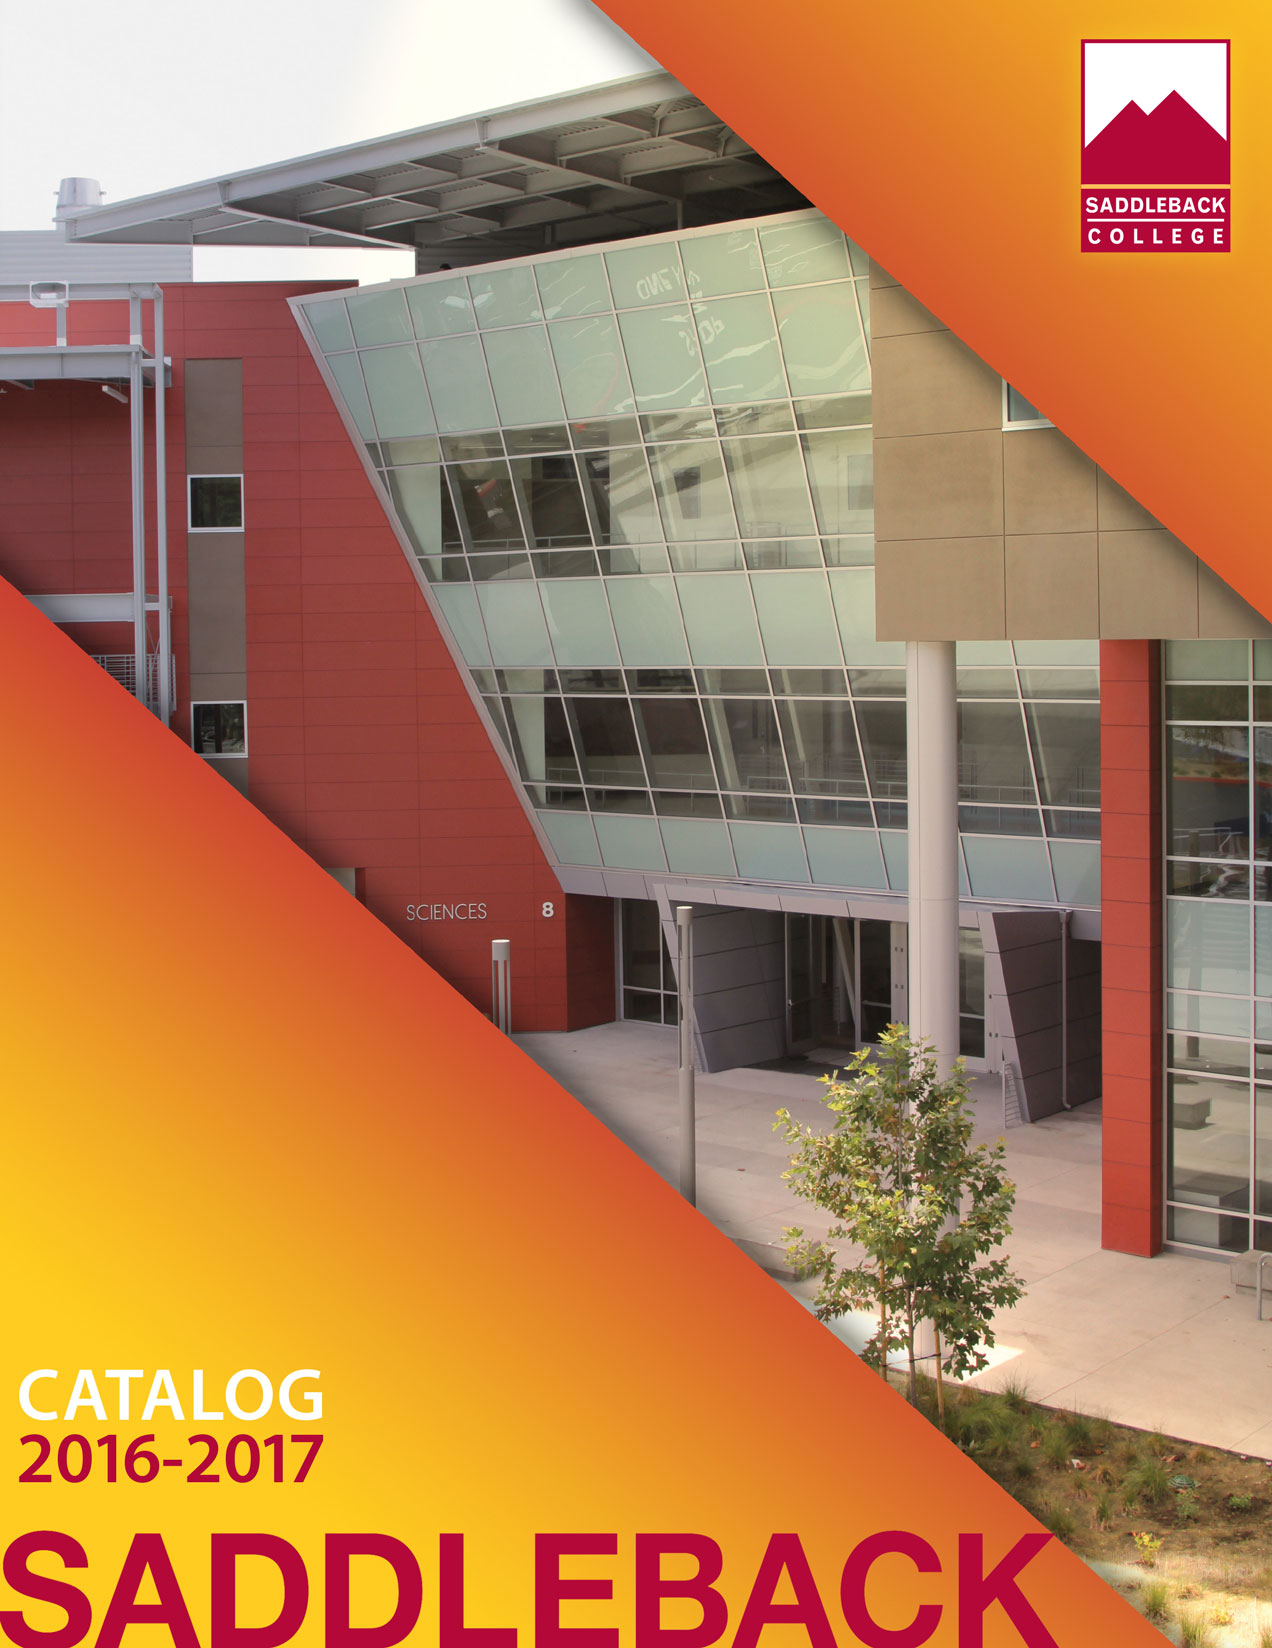 Saddleback College Catalog 2016-2017